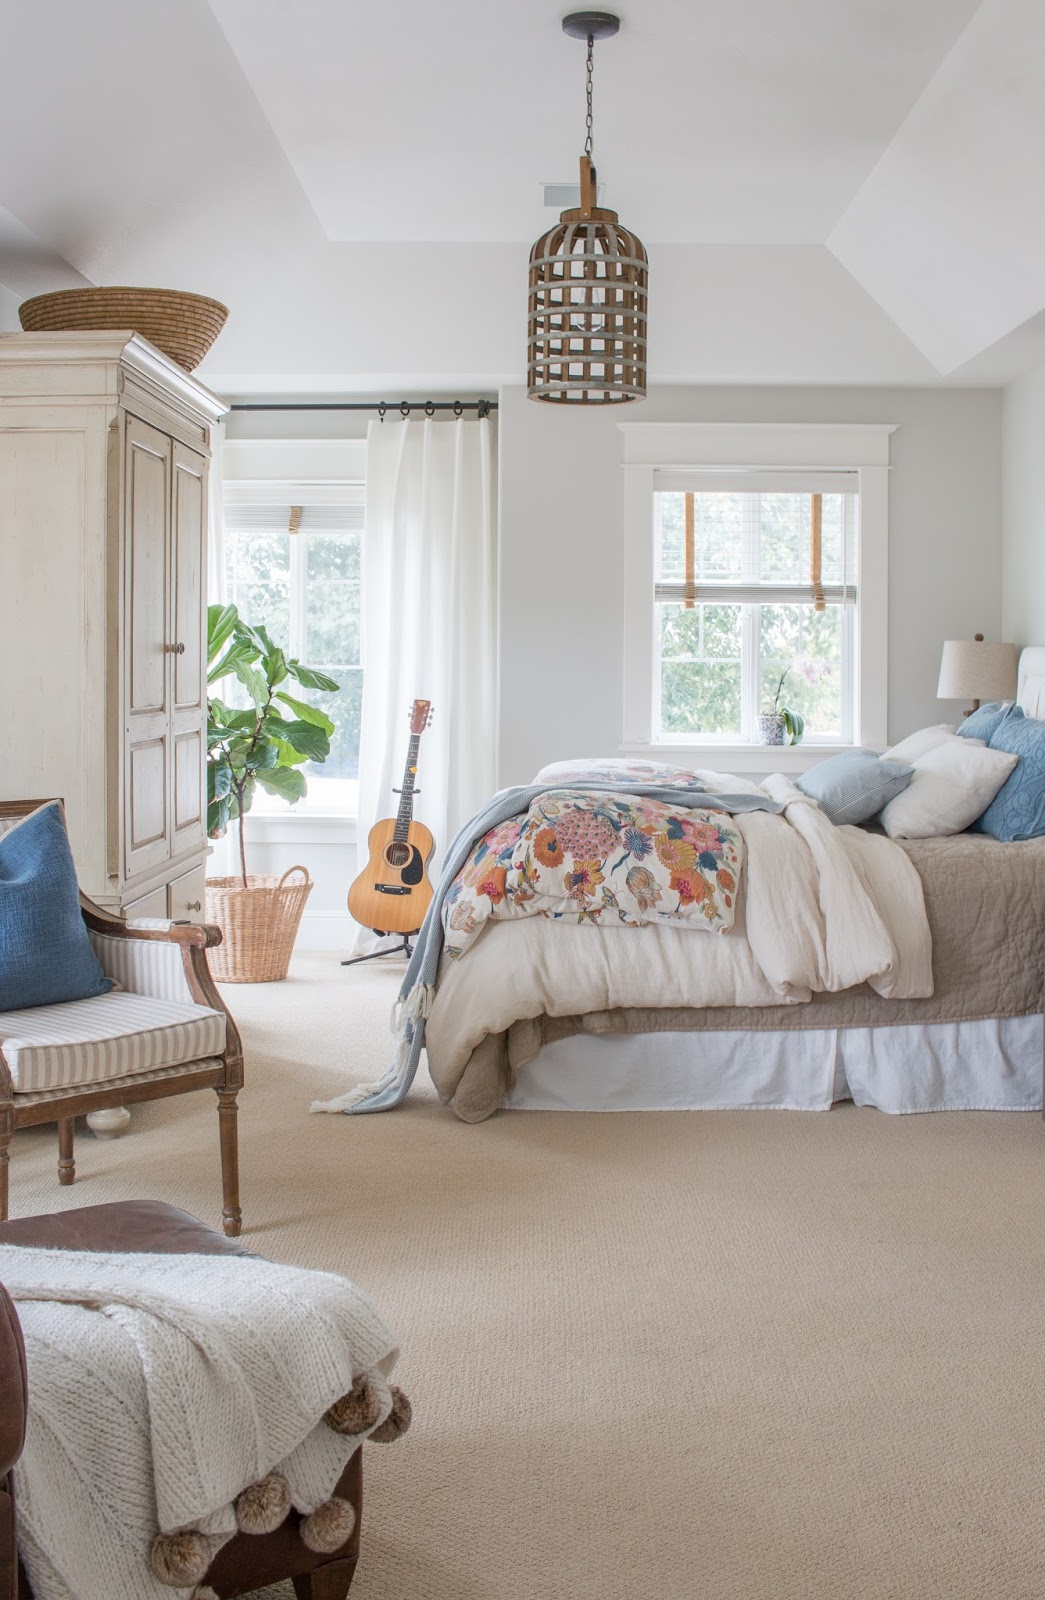 light and neutral bedroom with floral duvet and guitar on a stand